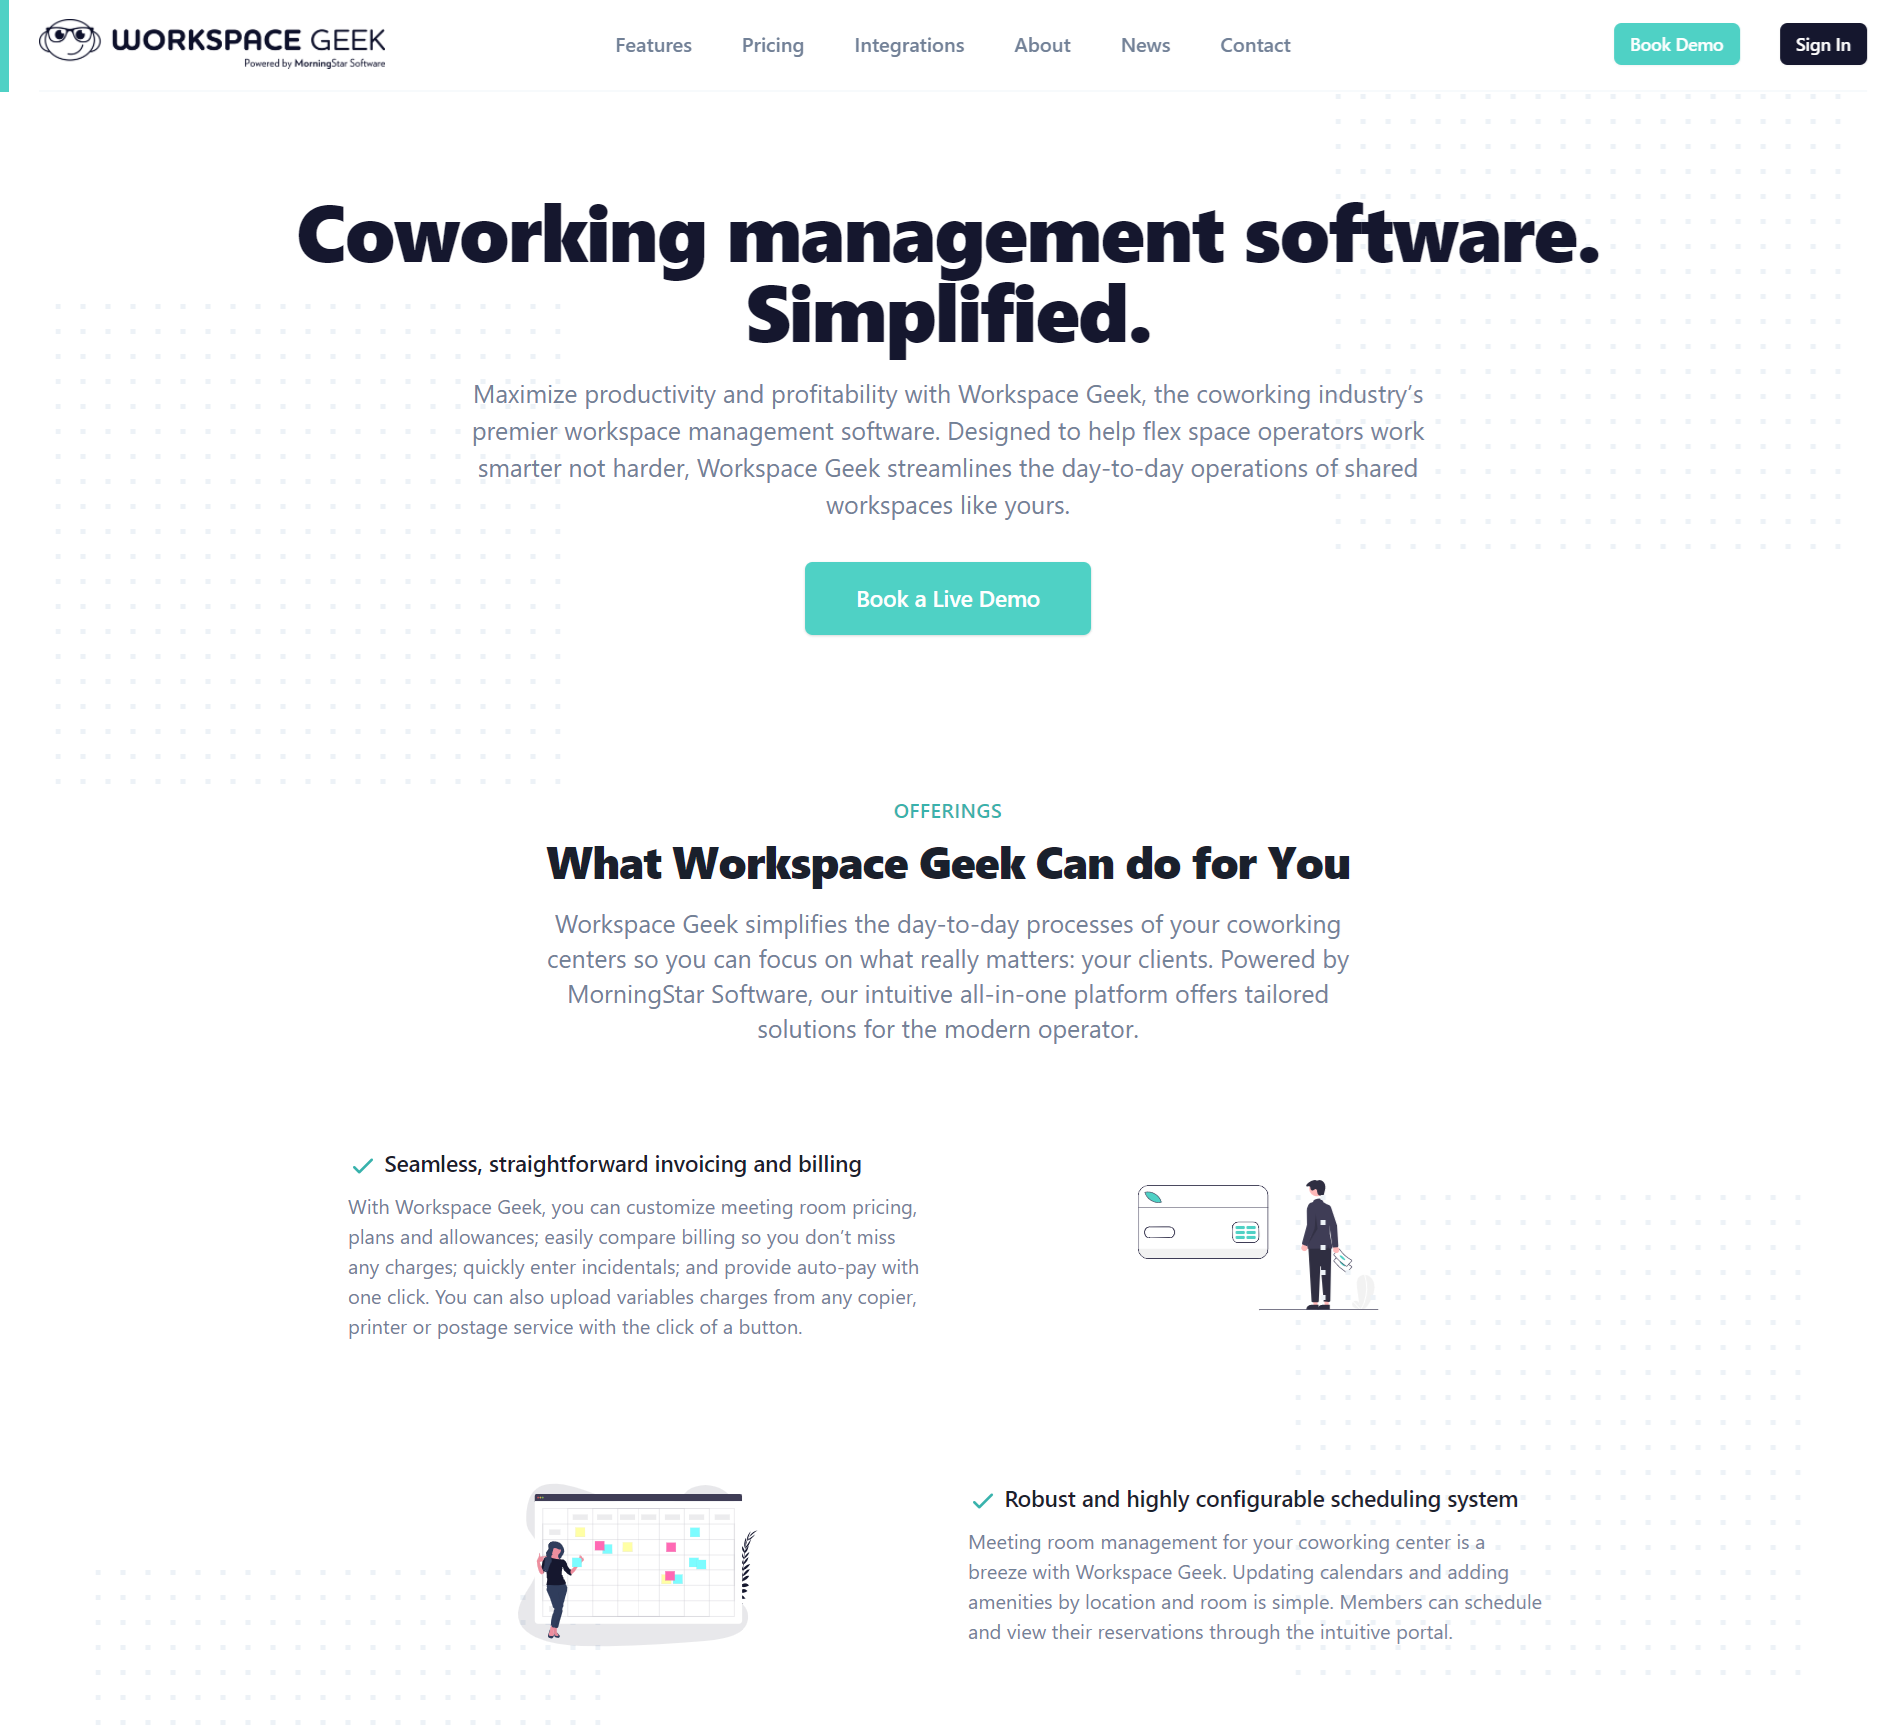 Workspace Geek website version 2